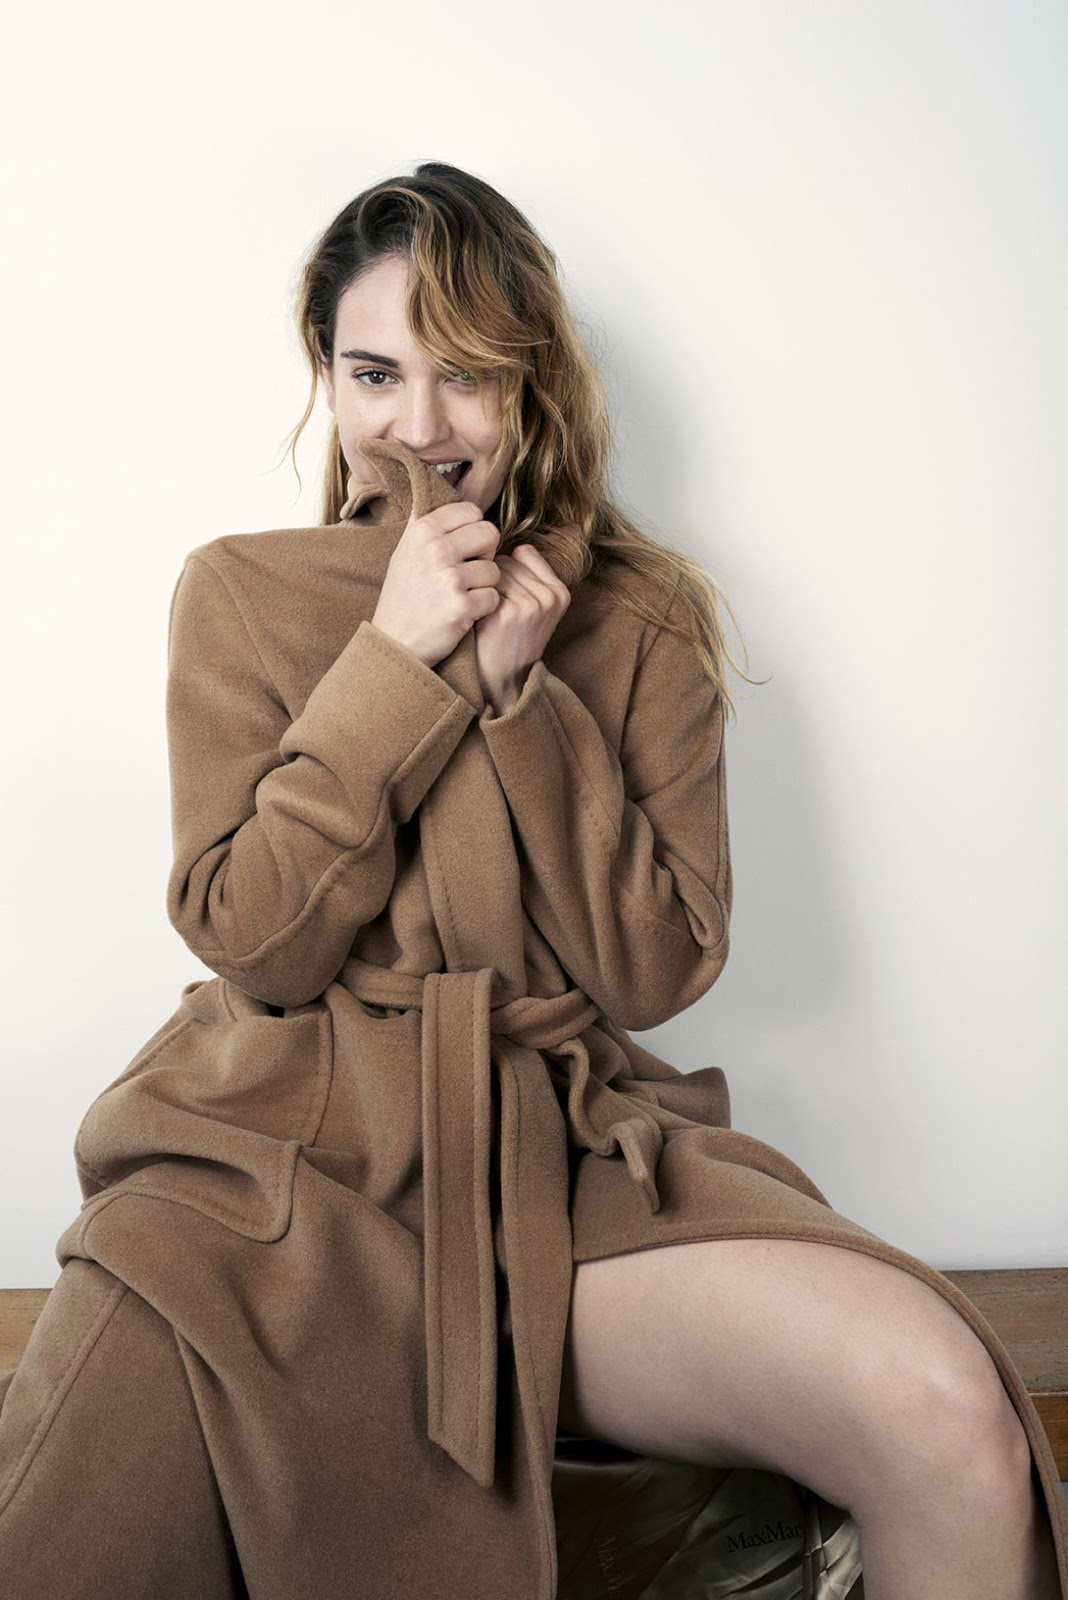 Lily James At David Slijper Photoshoot For Vanity Fair Italy